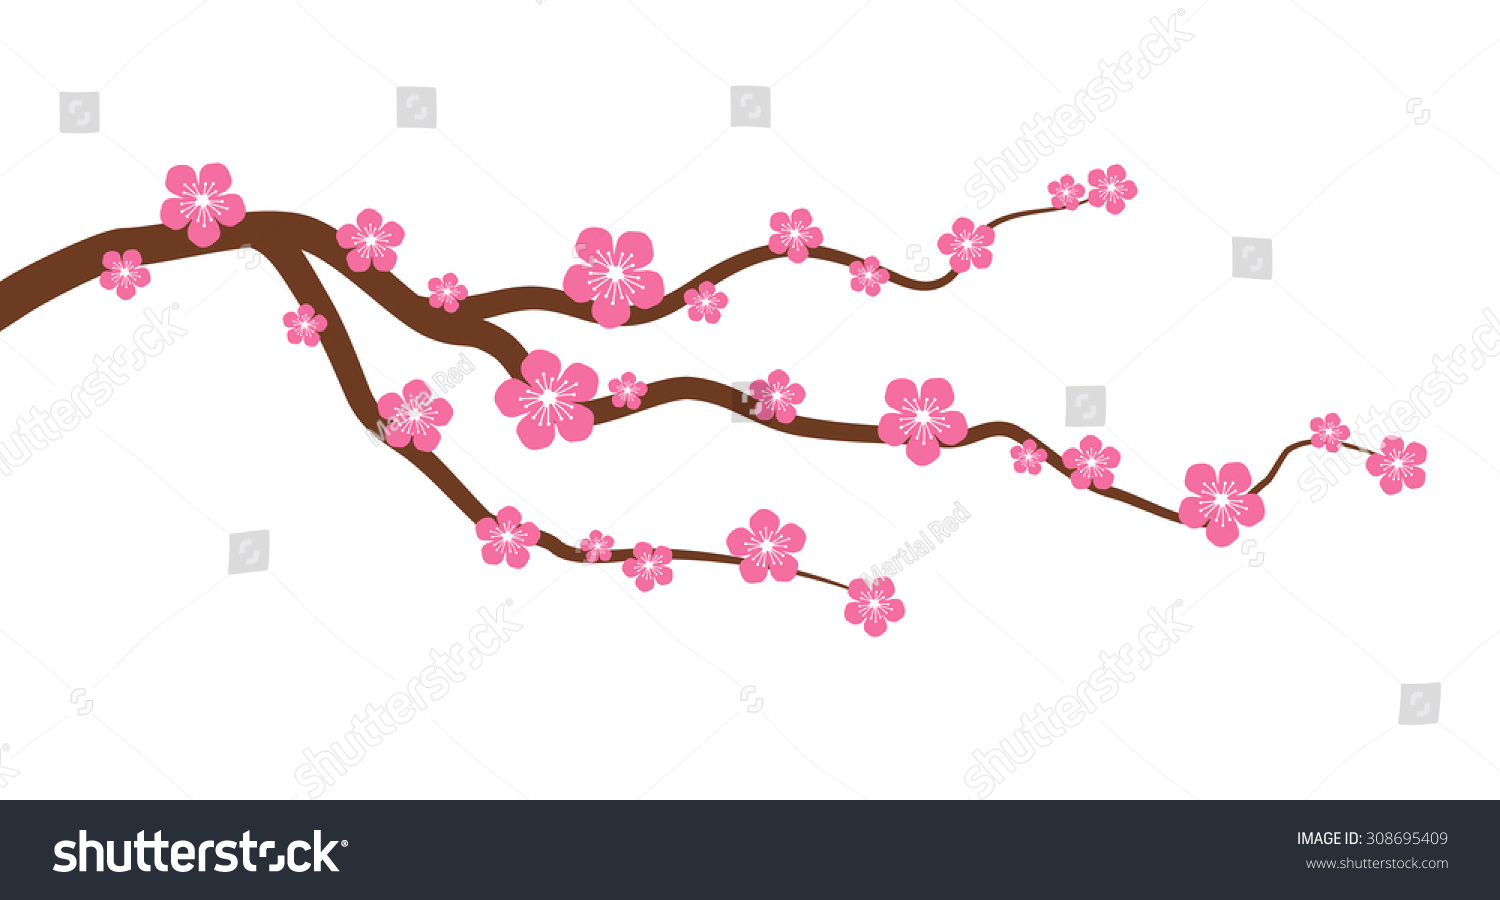 Peach Cherry Blossom Tree Branch Flowers Stock Vector ...